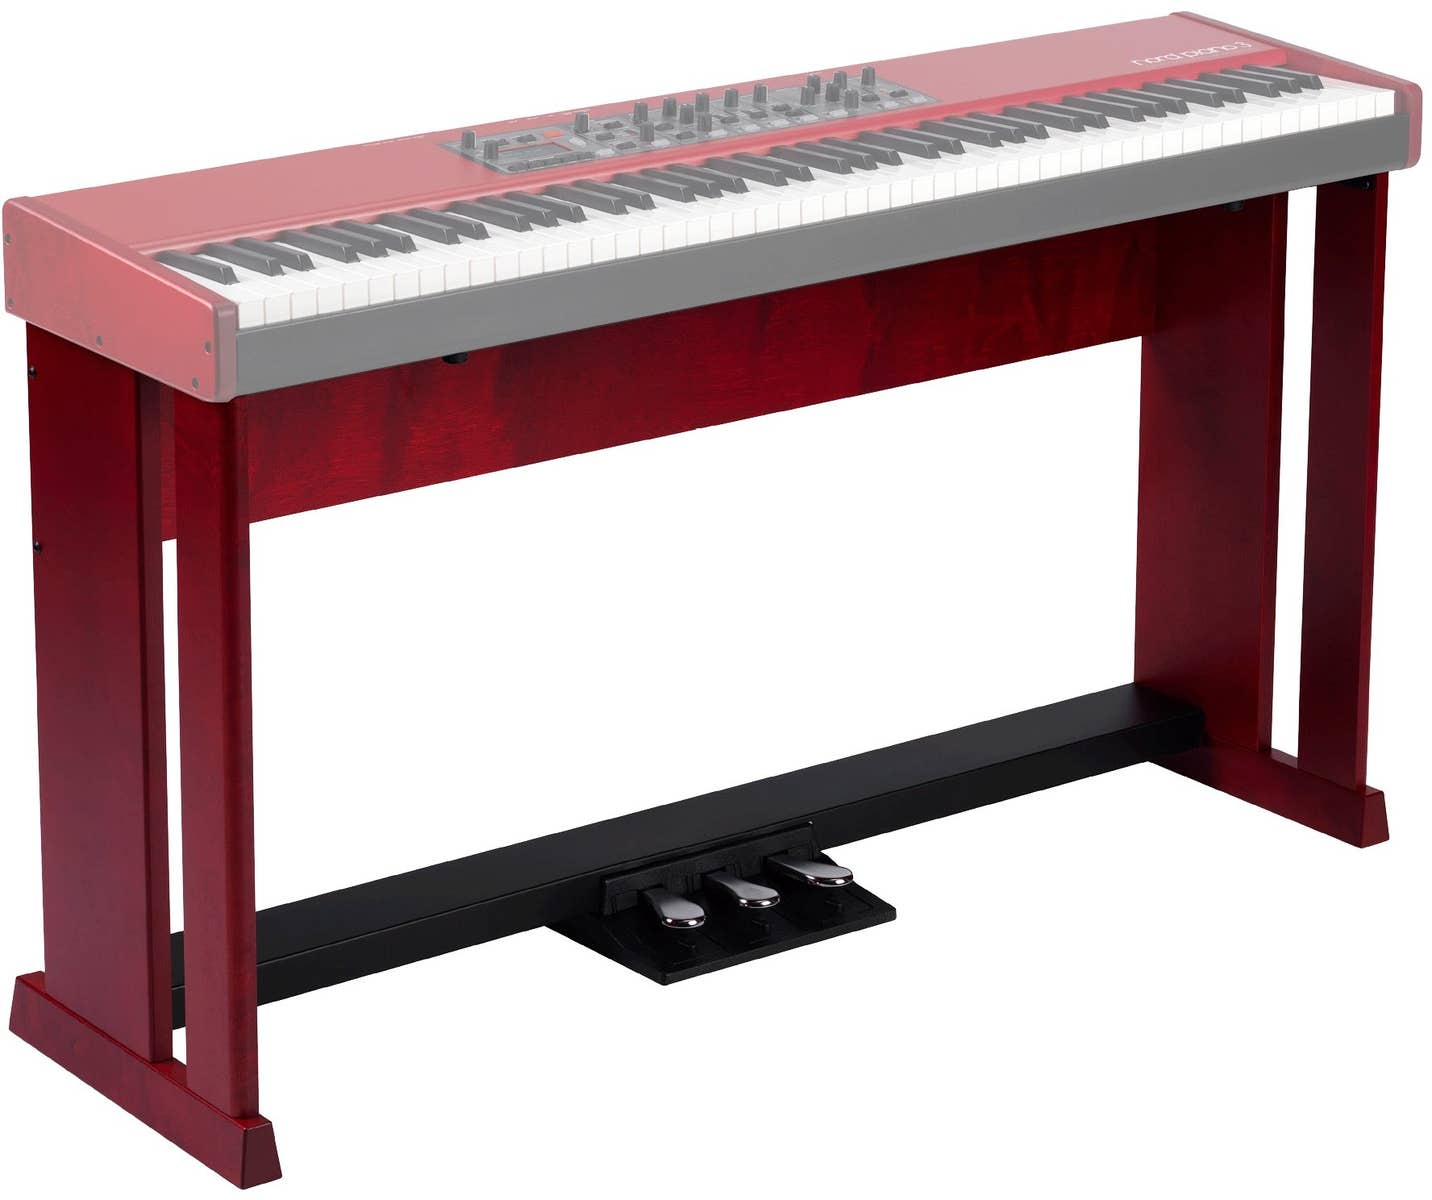 Nord Piano/Keyboard Stand - Wood (Suits 88-Note Stage & Piano models)